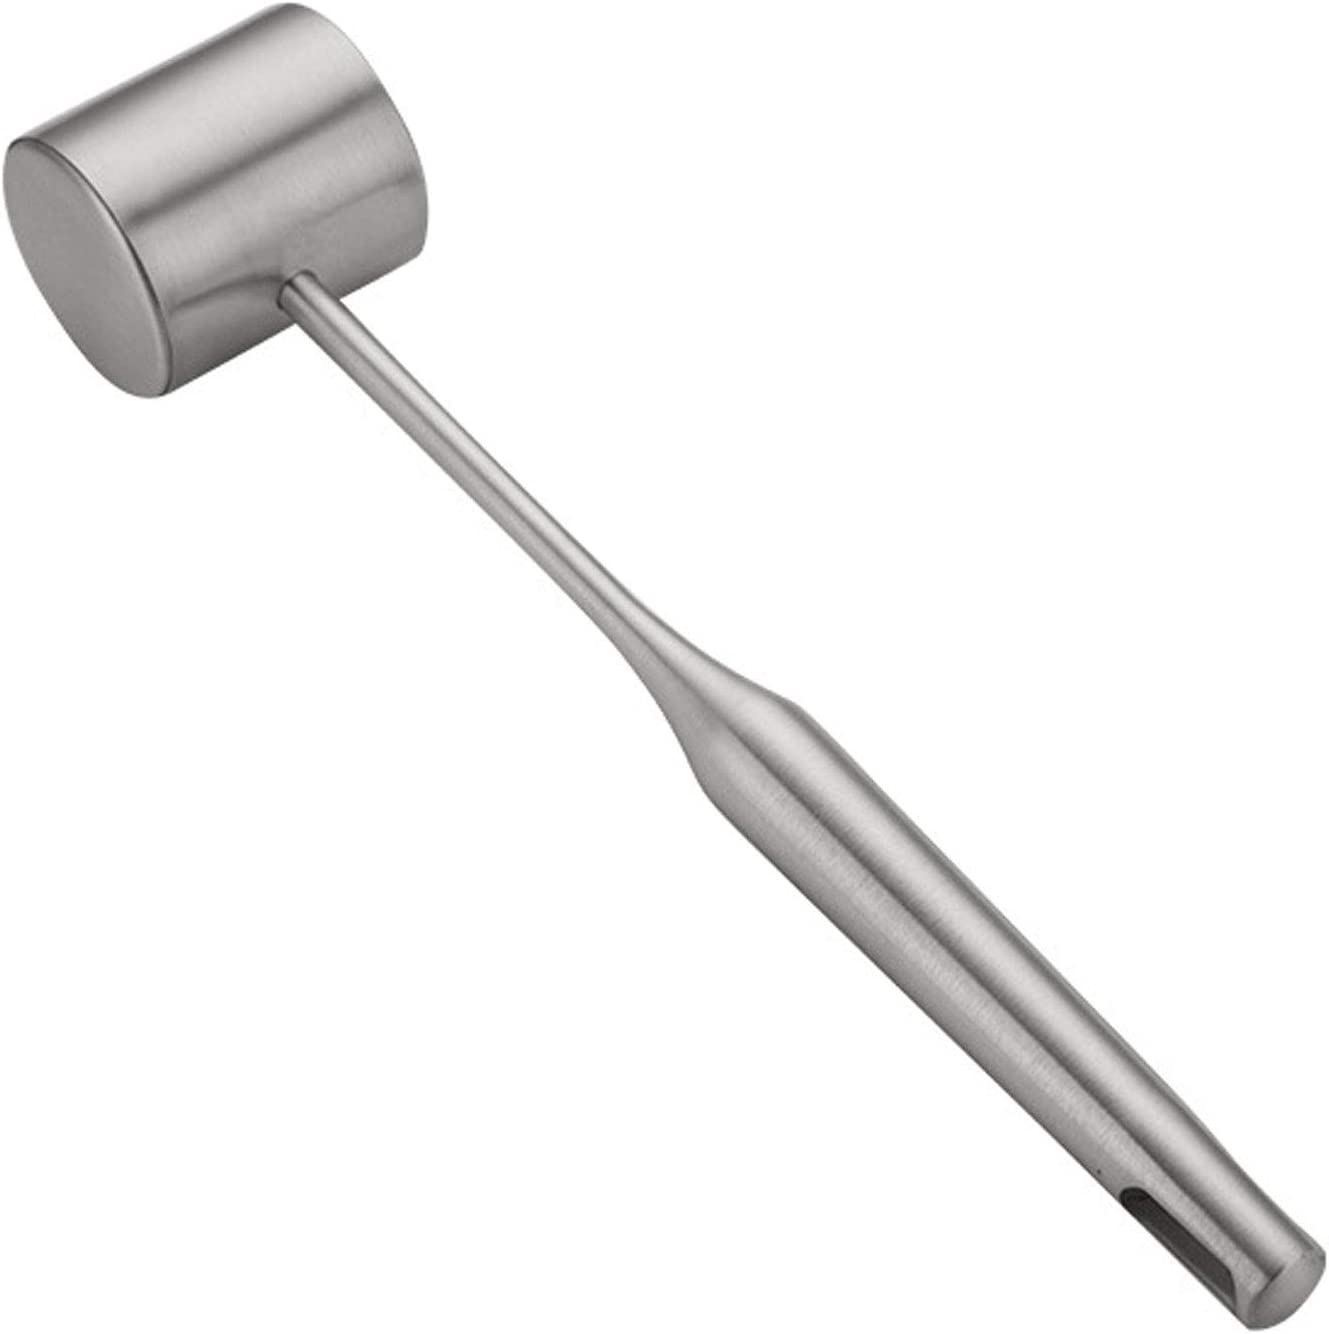 Meat Selling Tenderizer Hammer 1 Super-cheap Piece Stainless Steel Sturdy Malle